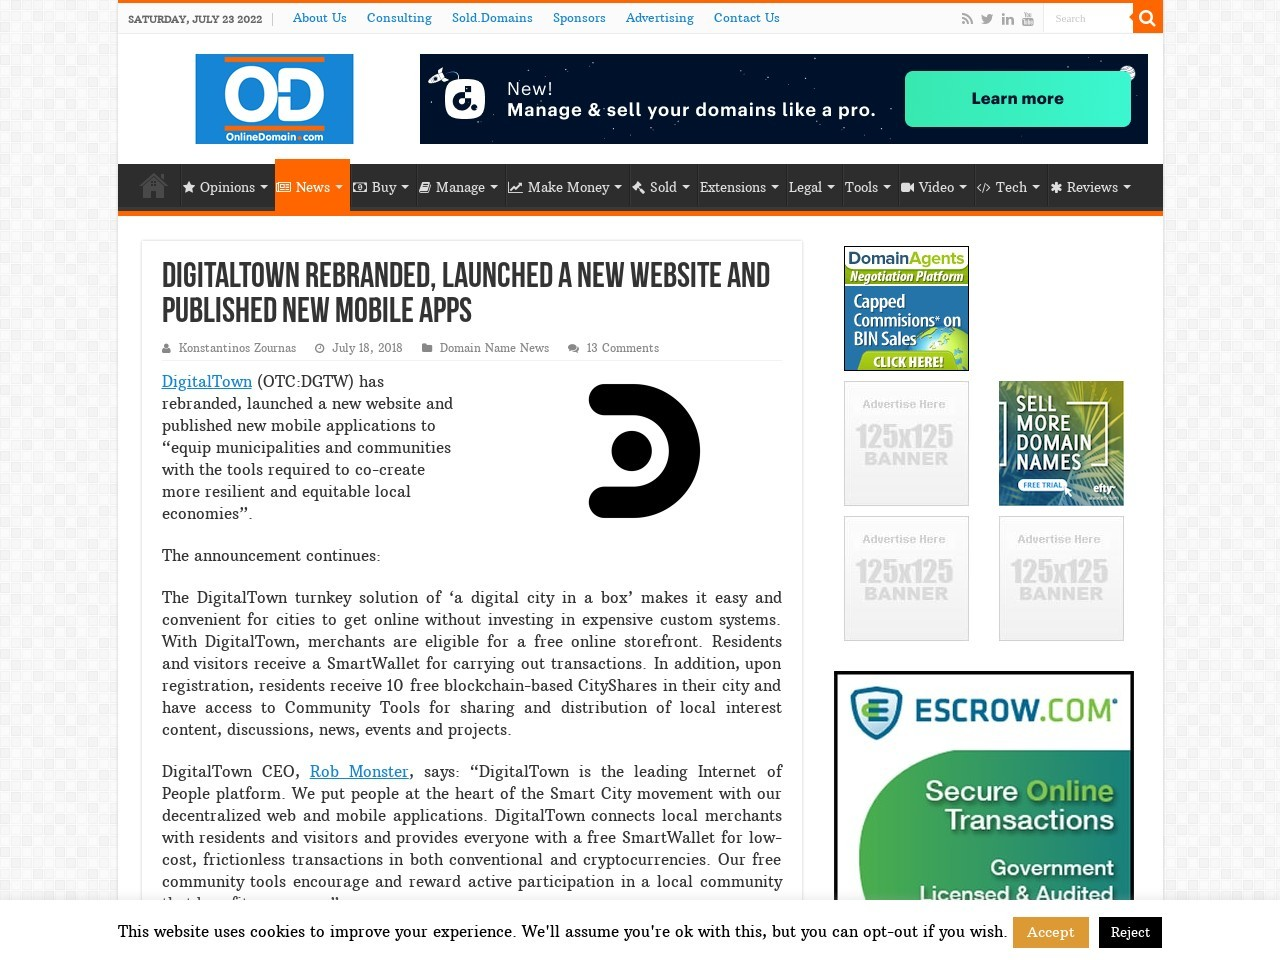 DigitalTown rebranded, launched a new website and published new mobile apps